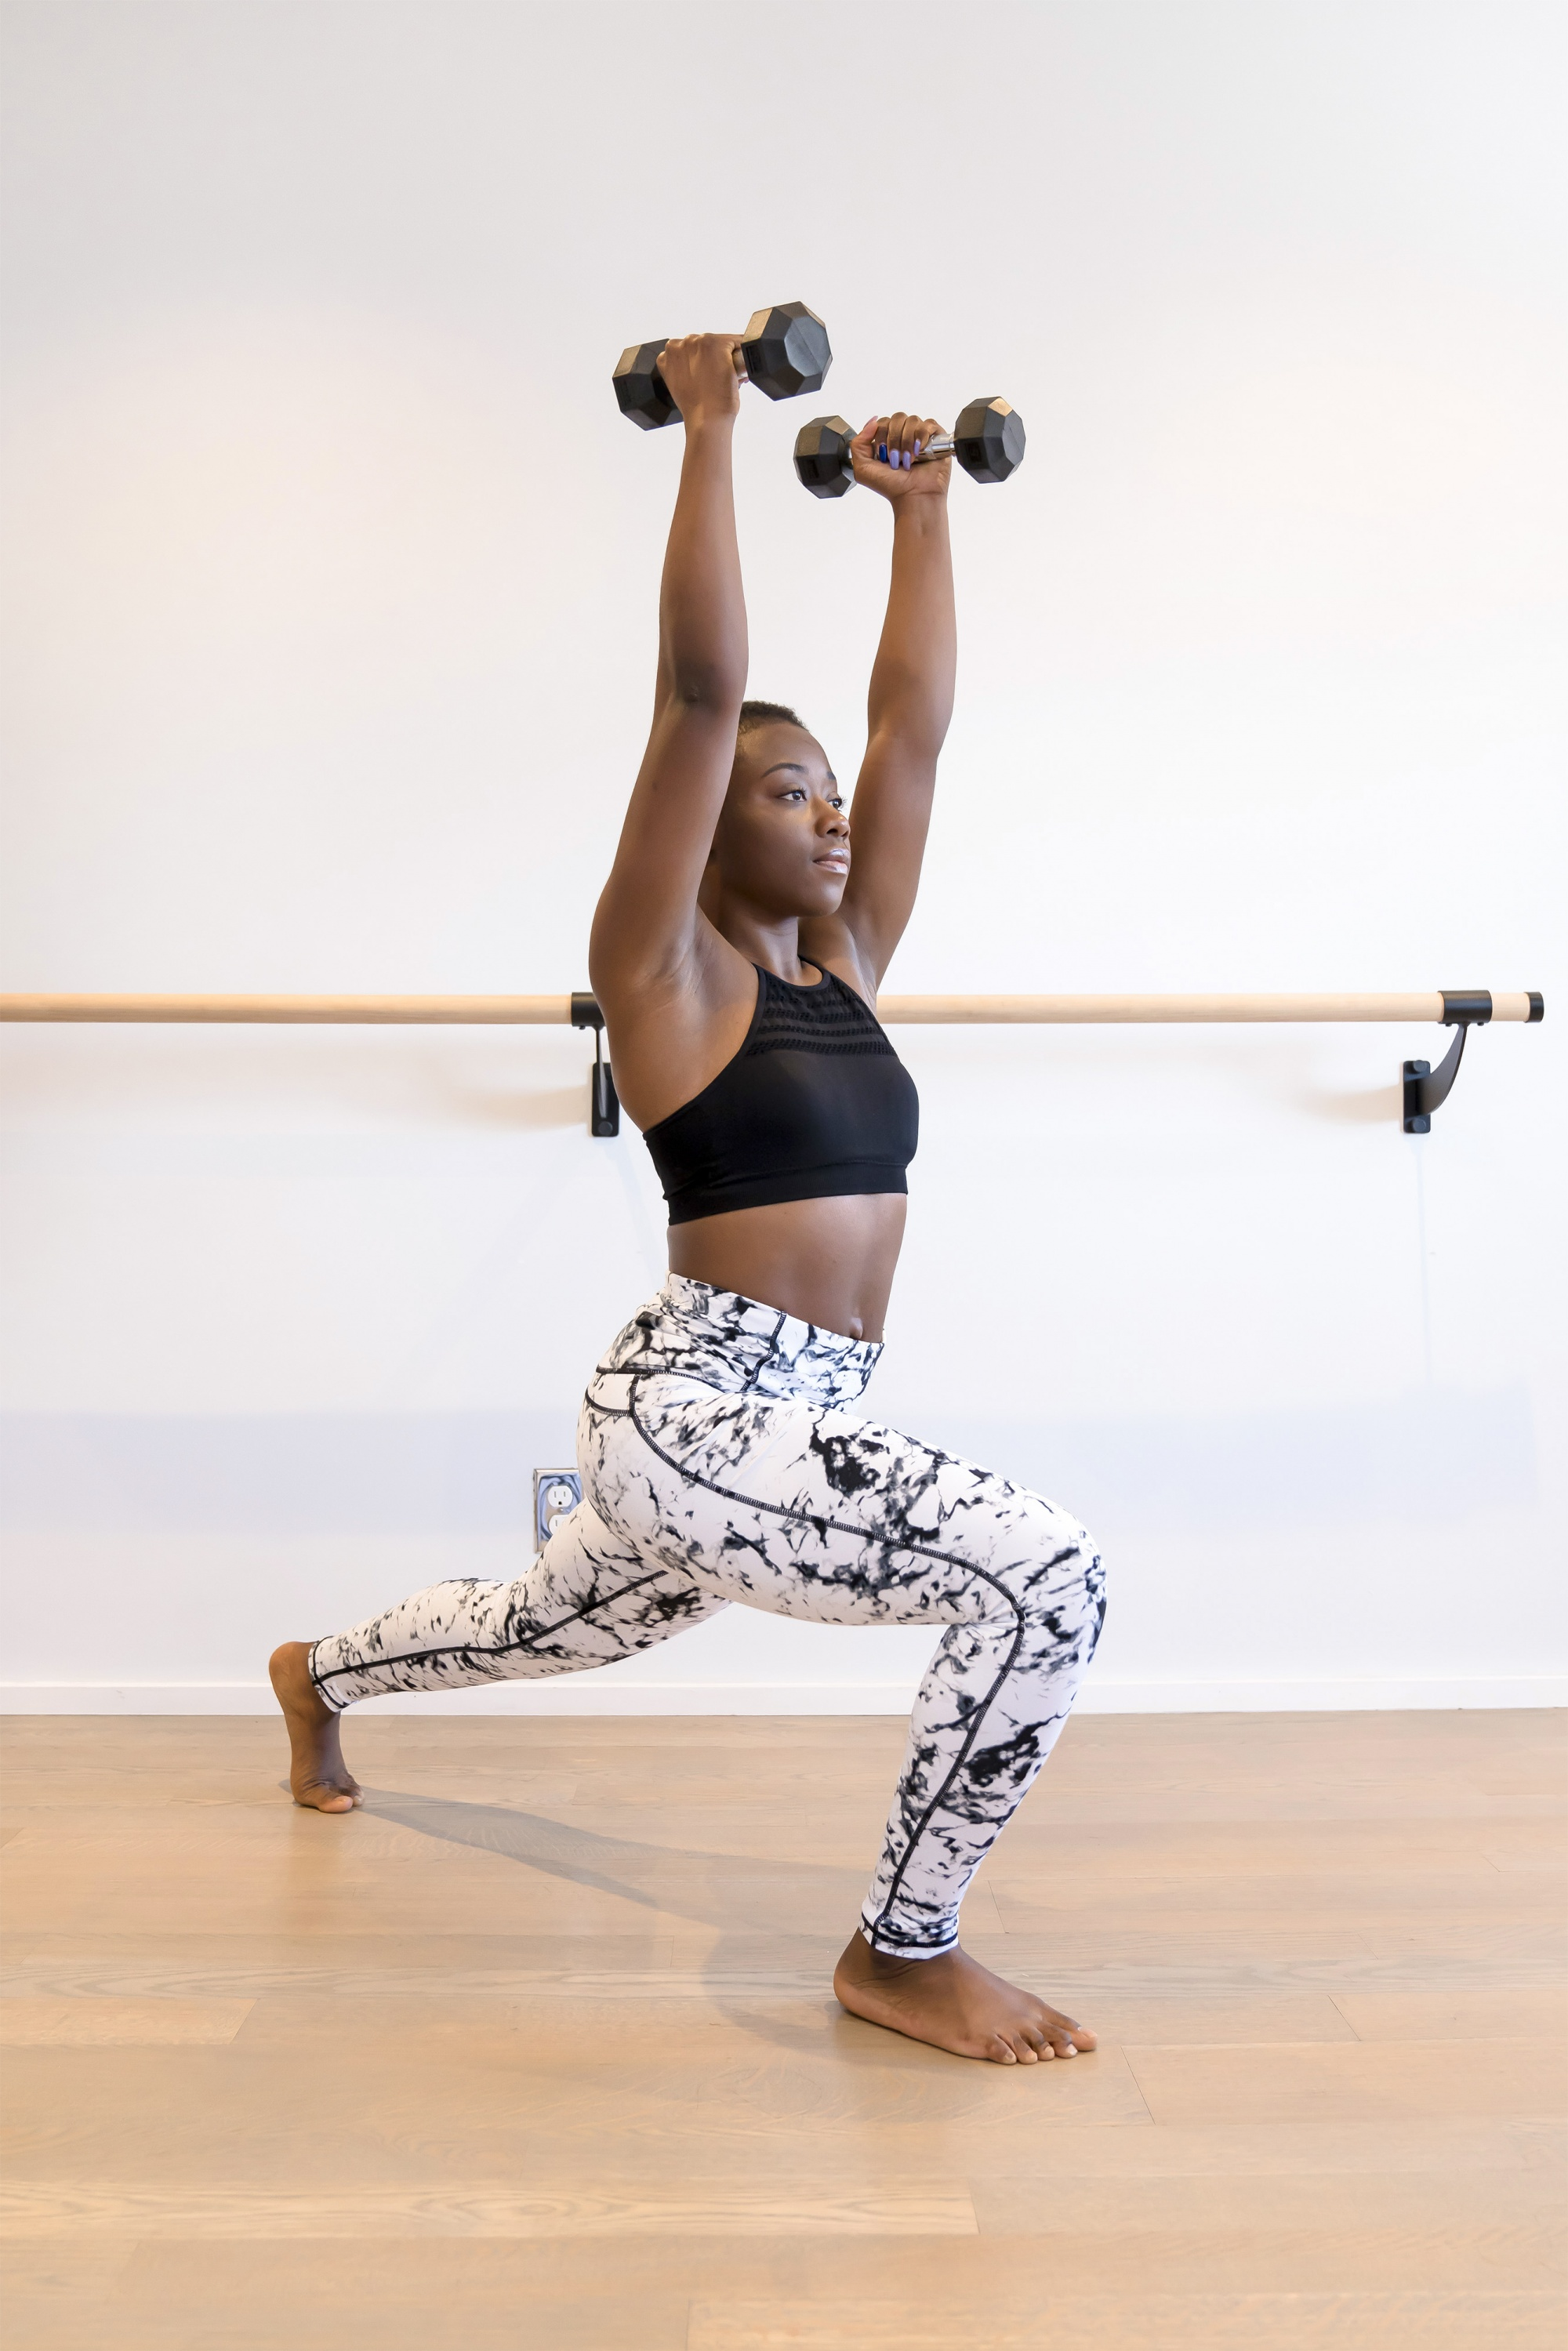 how to get fit over 40, Black woman in b&w leggings and black longline crop top with dumbbells above her head in lunge